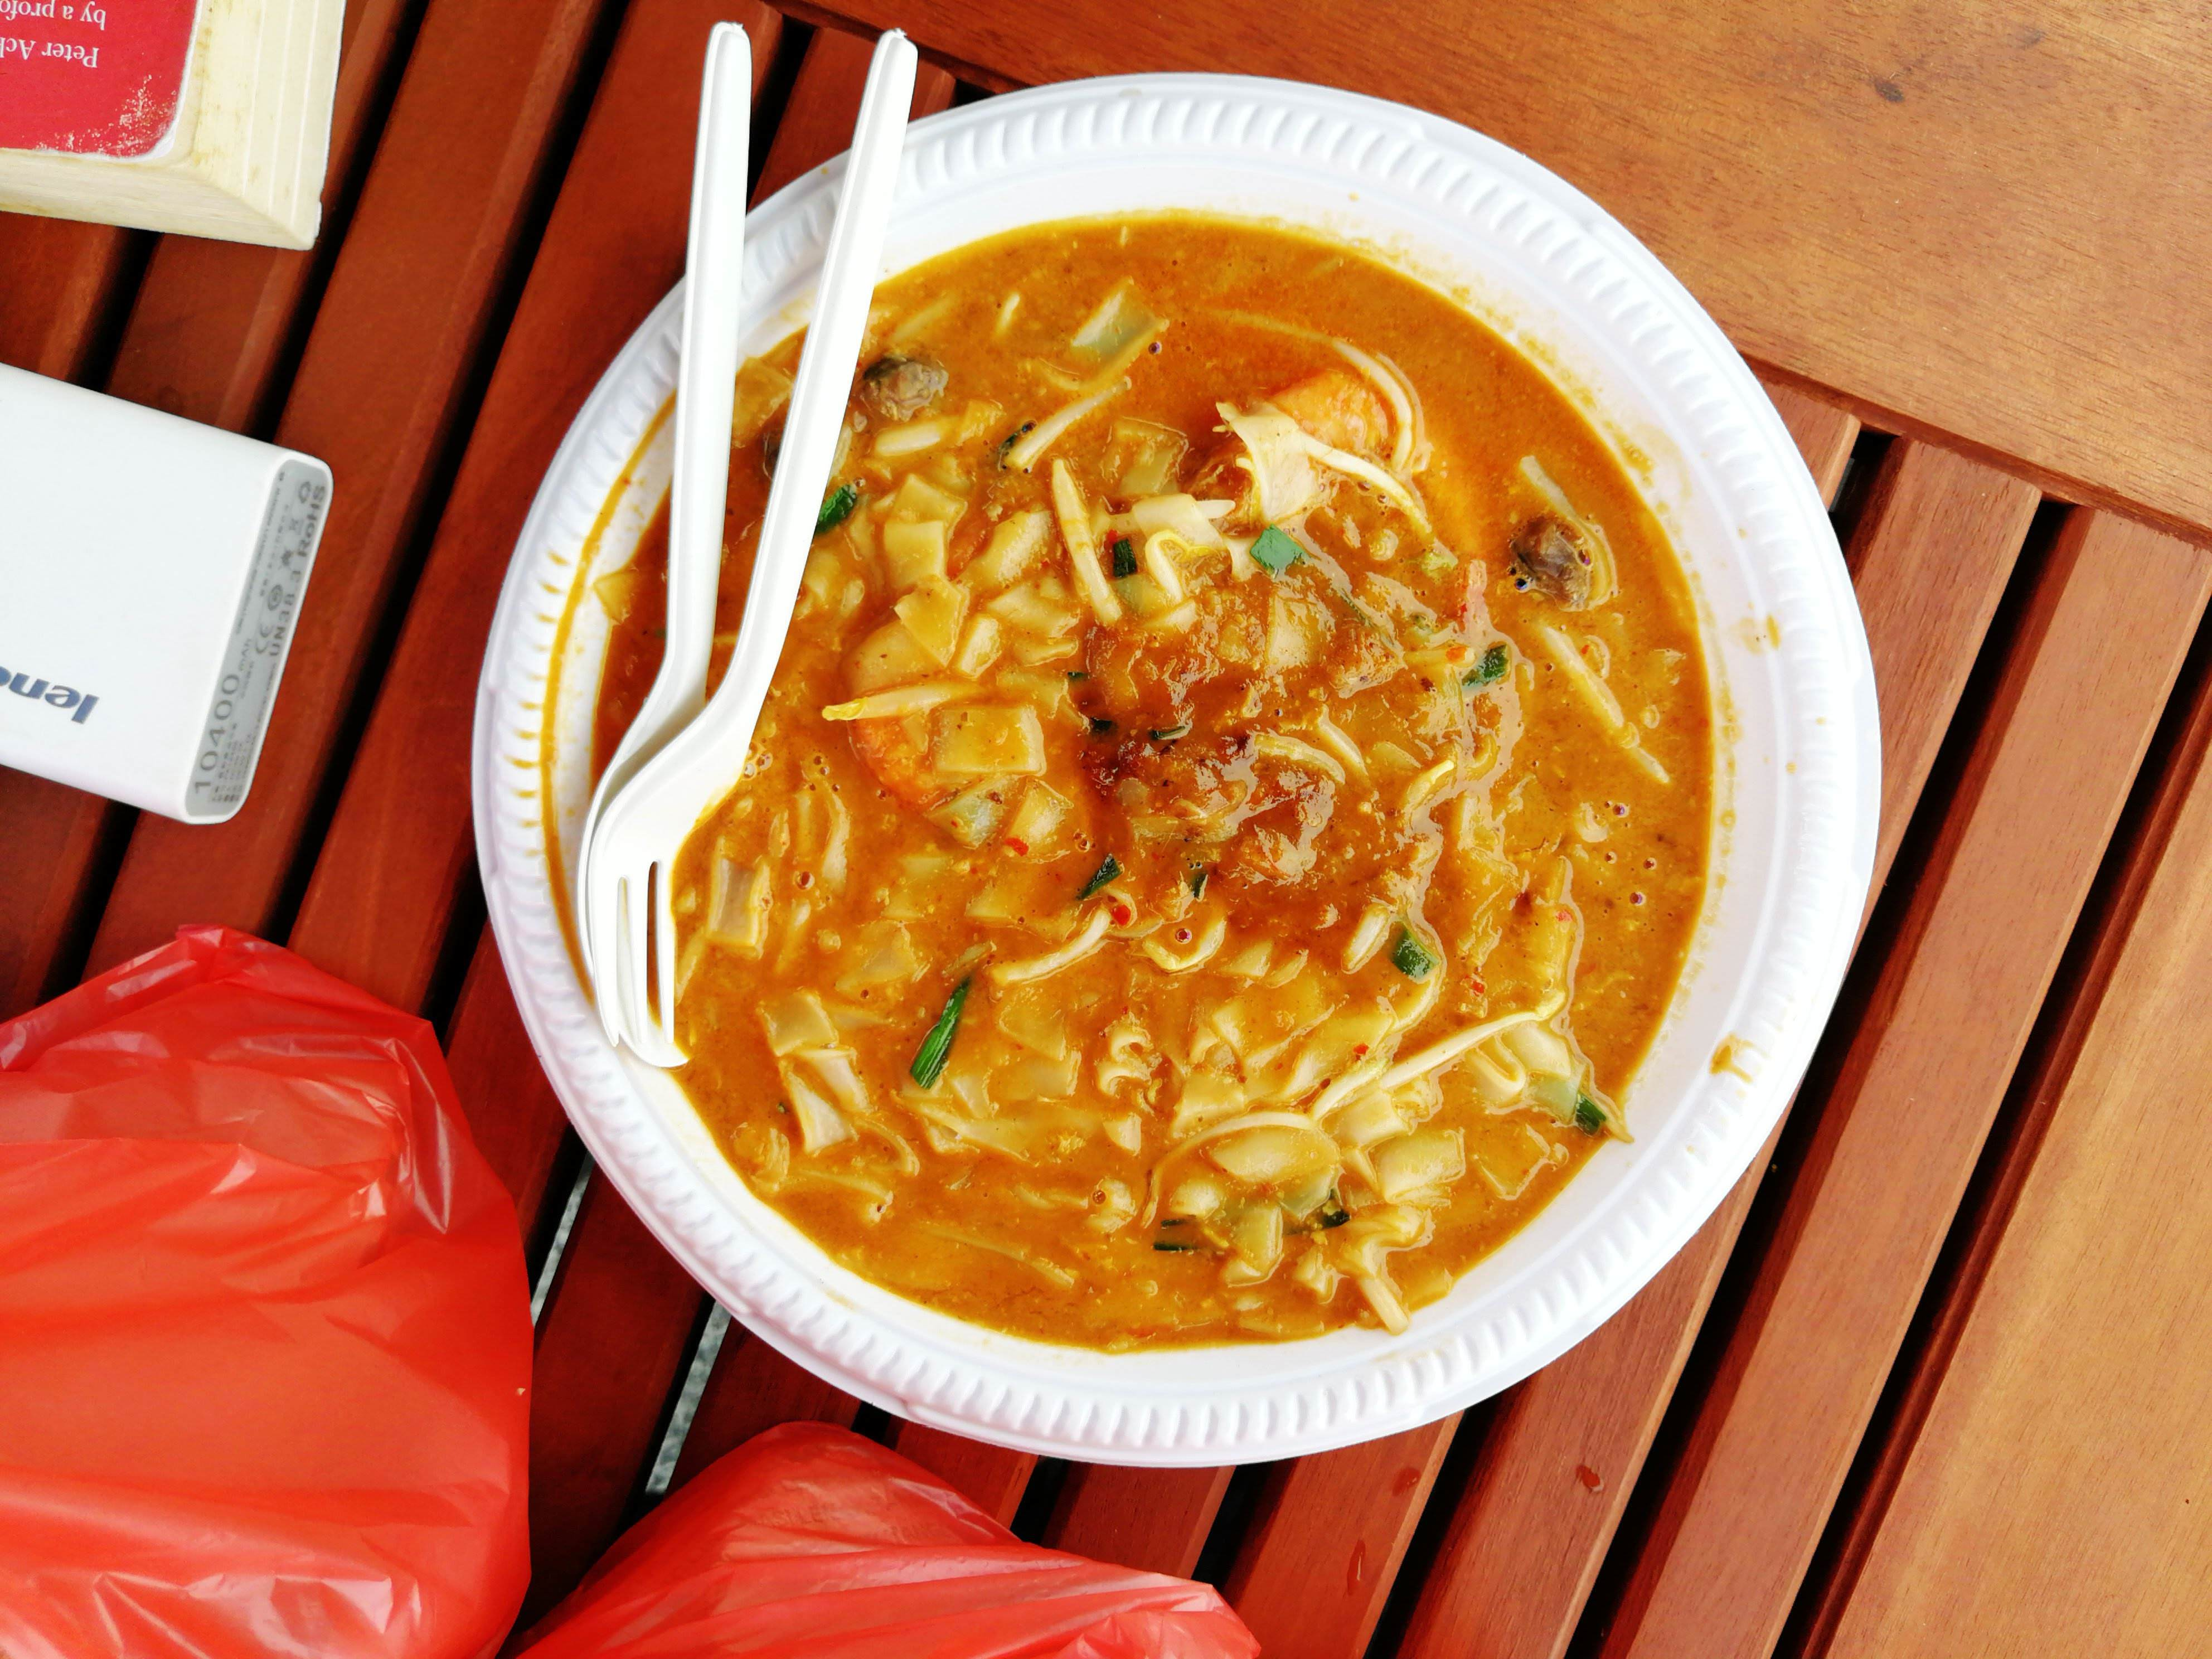 Char kway teow from Mie Cord.